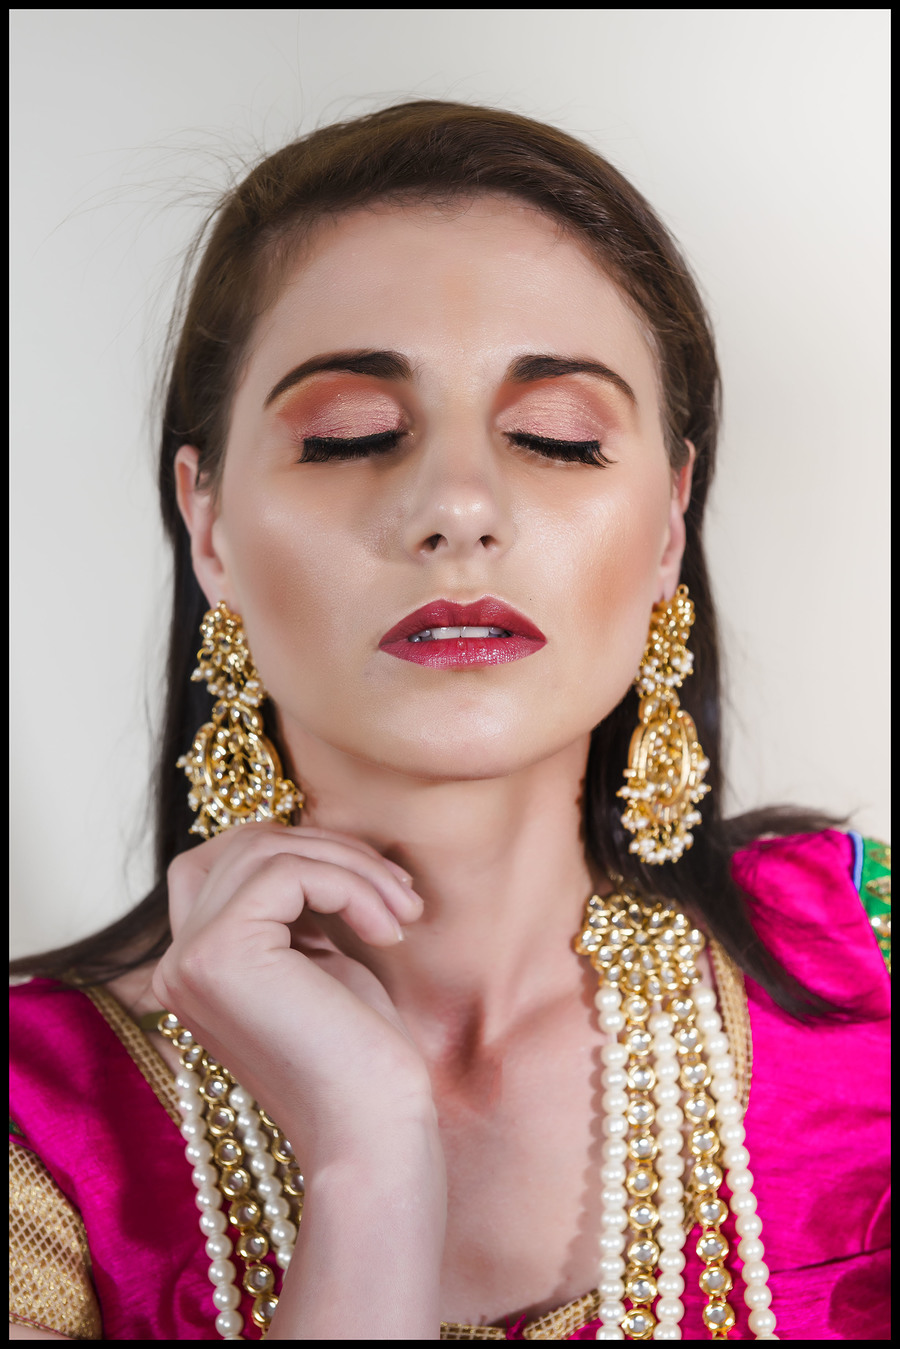 Flawless make-up / Photography by Fam, Model IVA UNGUREANU / Uploaded 15th June 2018 @ 05:27 PM